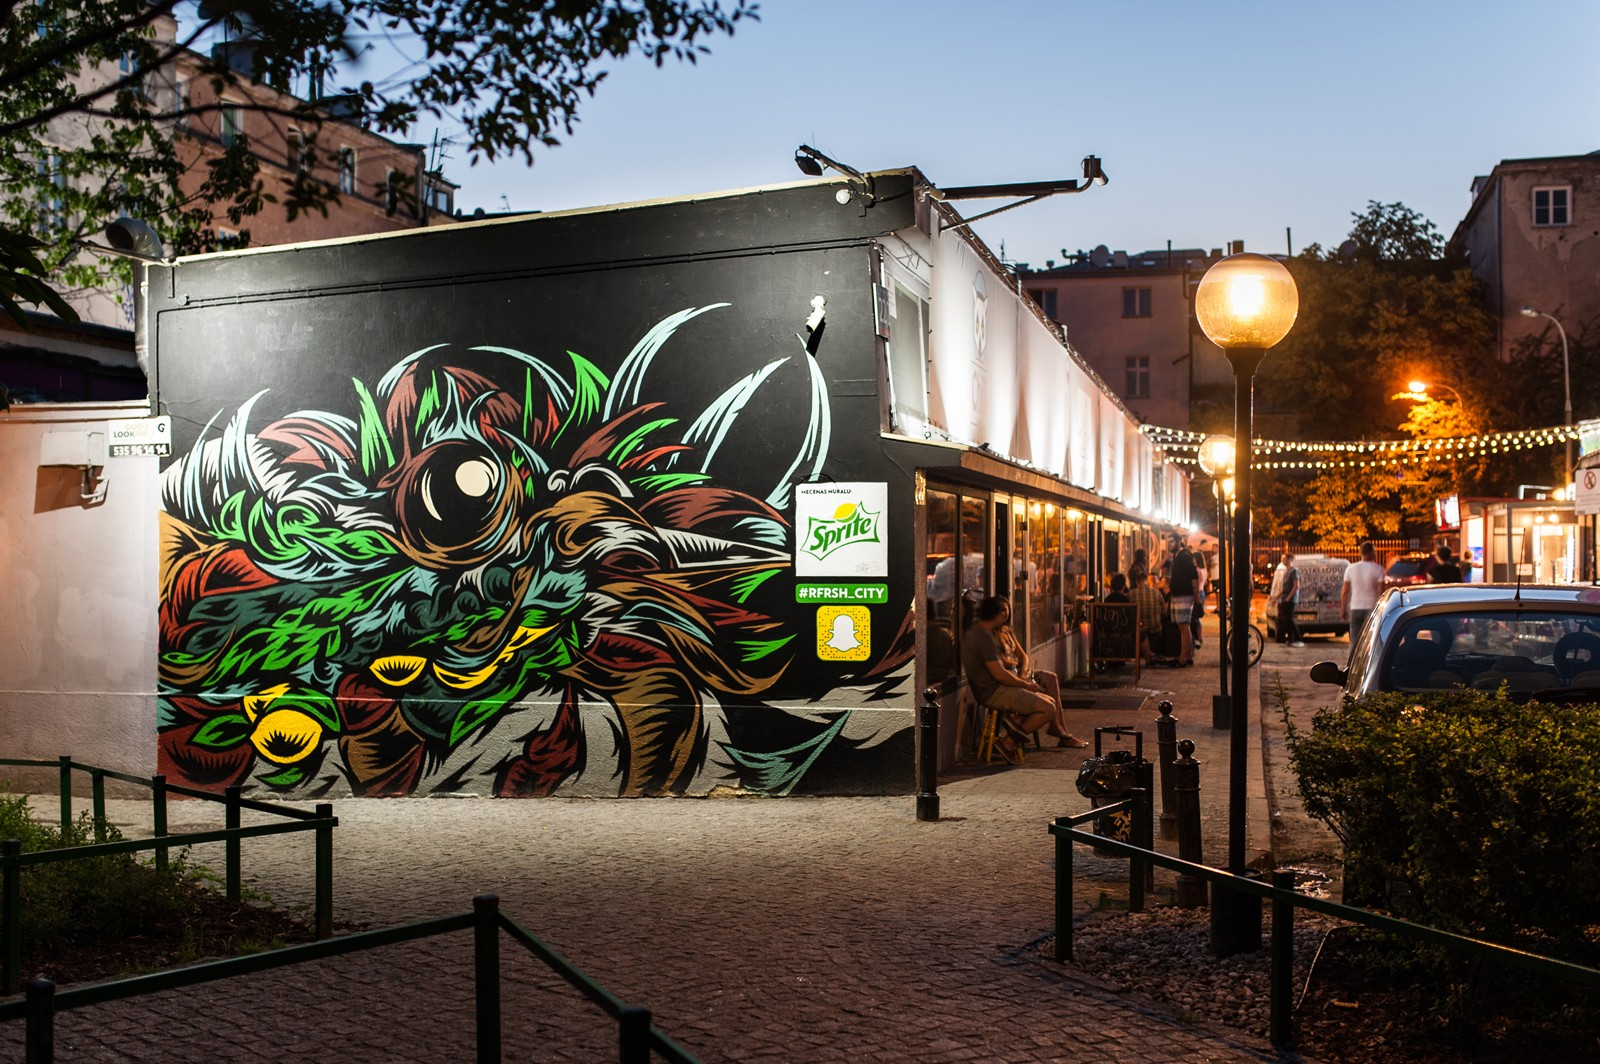 Pubs at Warsaw's pavilions with a hand painted advertising mural by Swanski for Sprite | #RFRSH_CITY | Portfolio